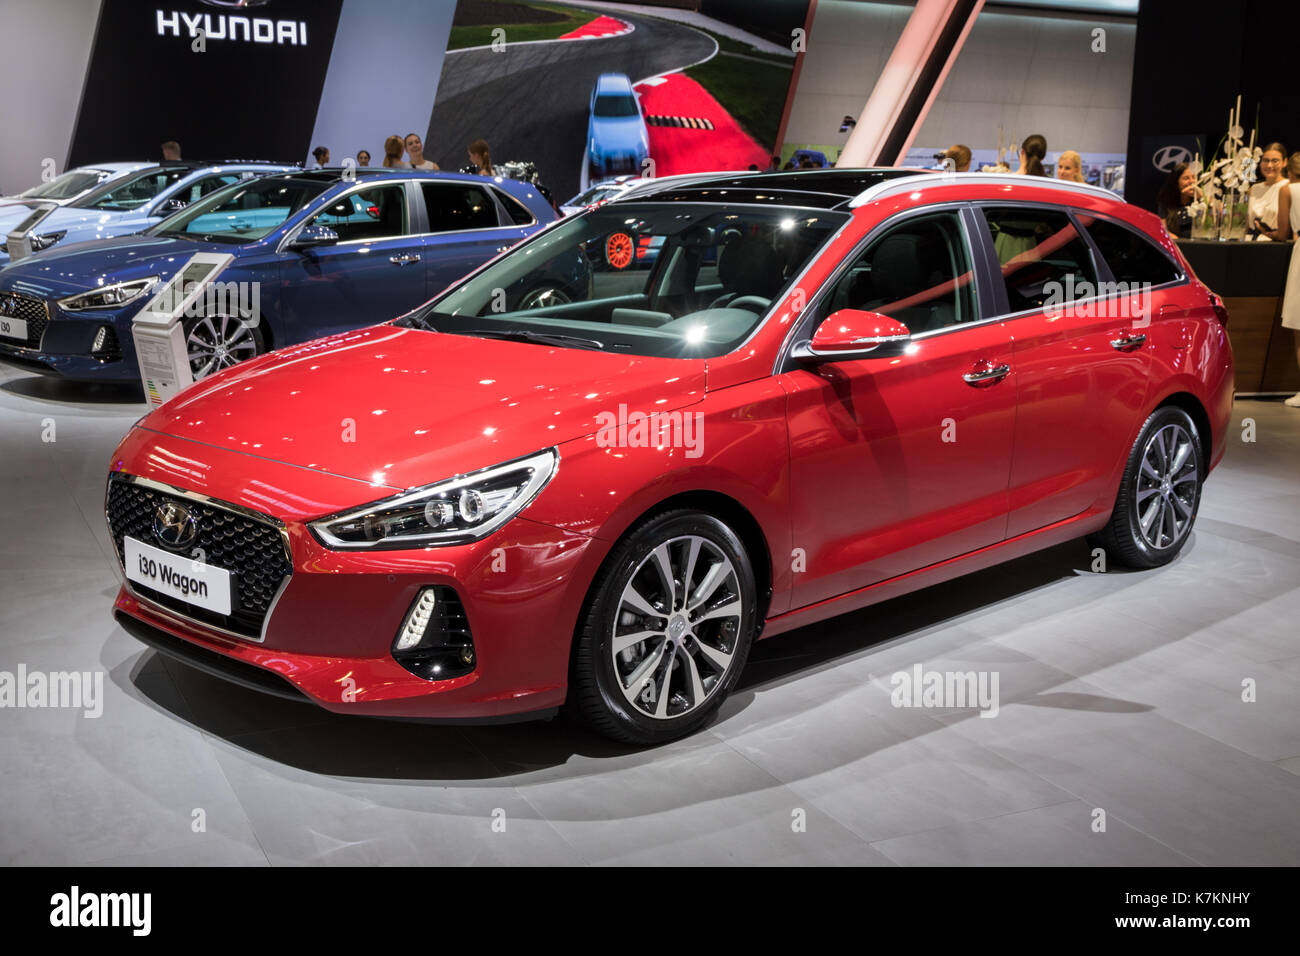 frankfurt germany sep 12 2017 new 2018 hyundai i30 wagon car at stock photo royalty free. Black Bedroom Furniture Sets. Home Design Ideas